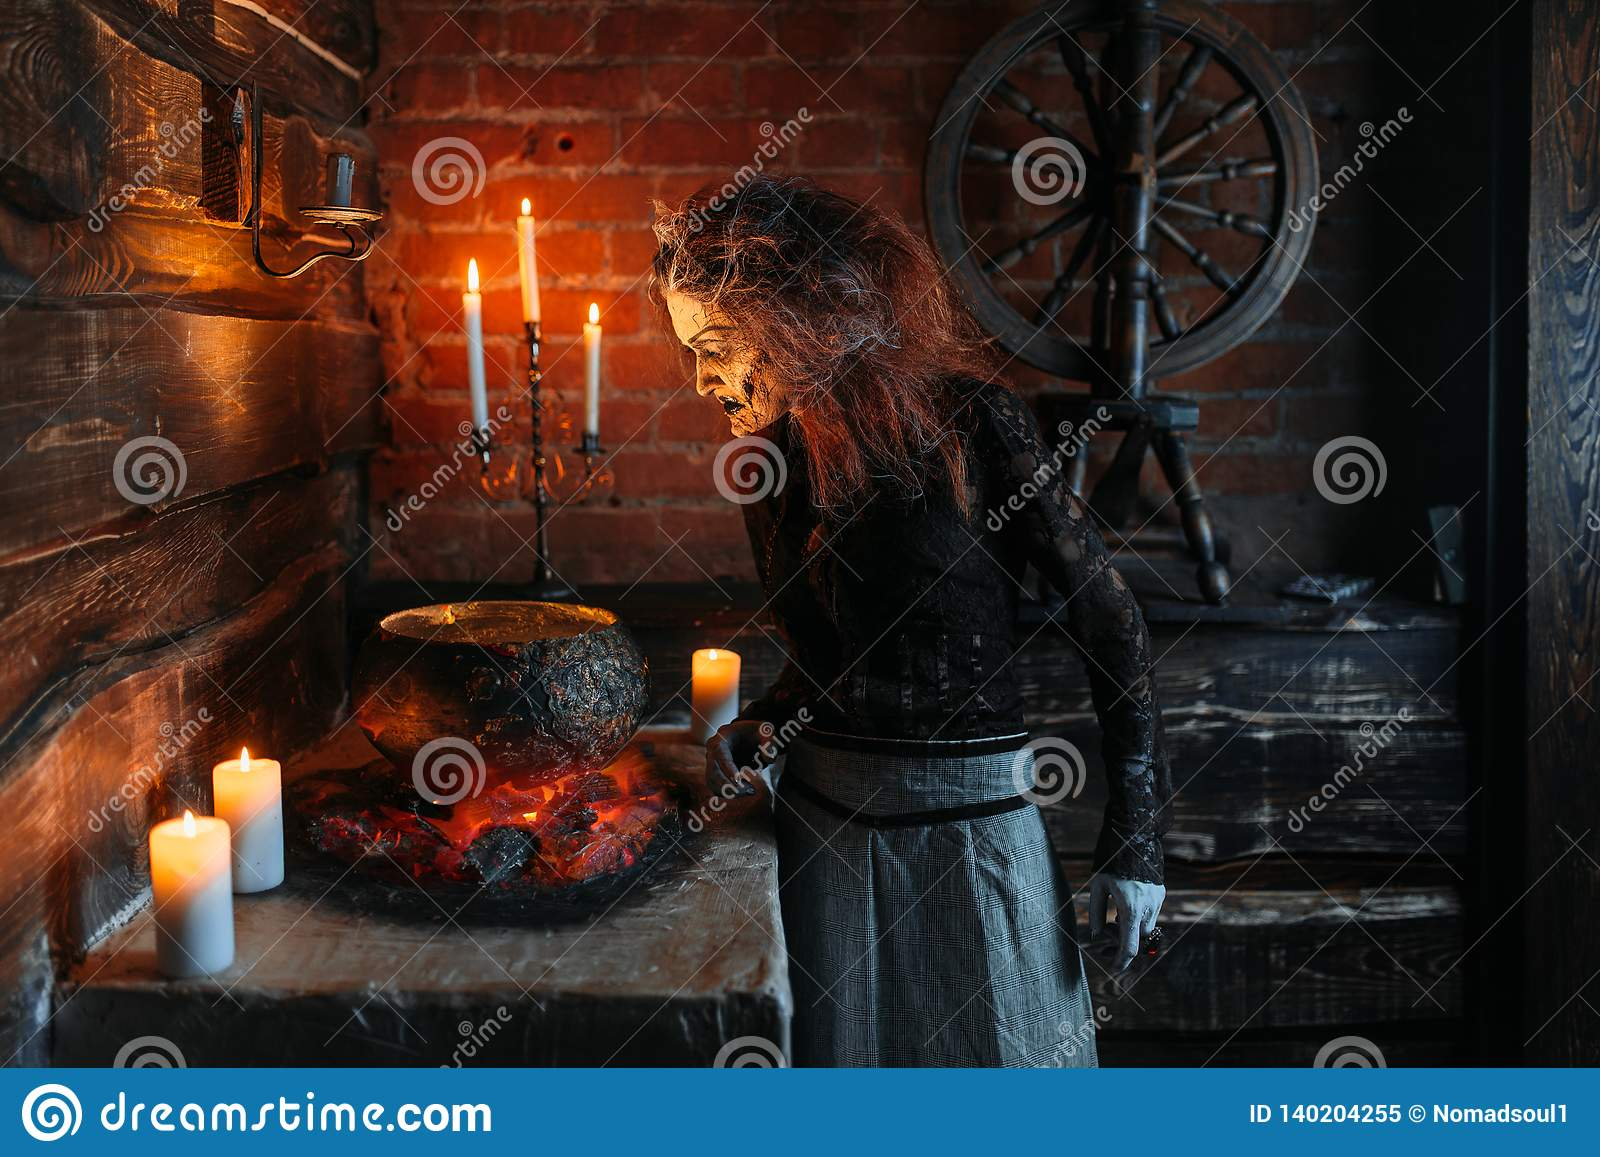 Scary Witch Reads Spell Over The Pot, Seance Stock Image - Image of